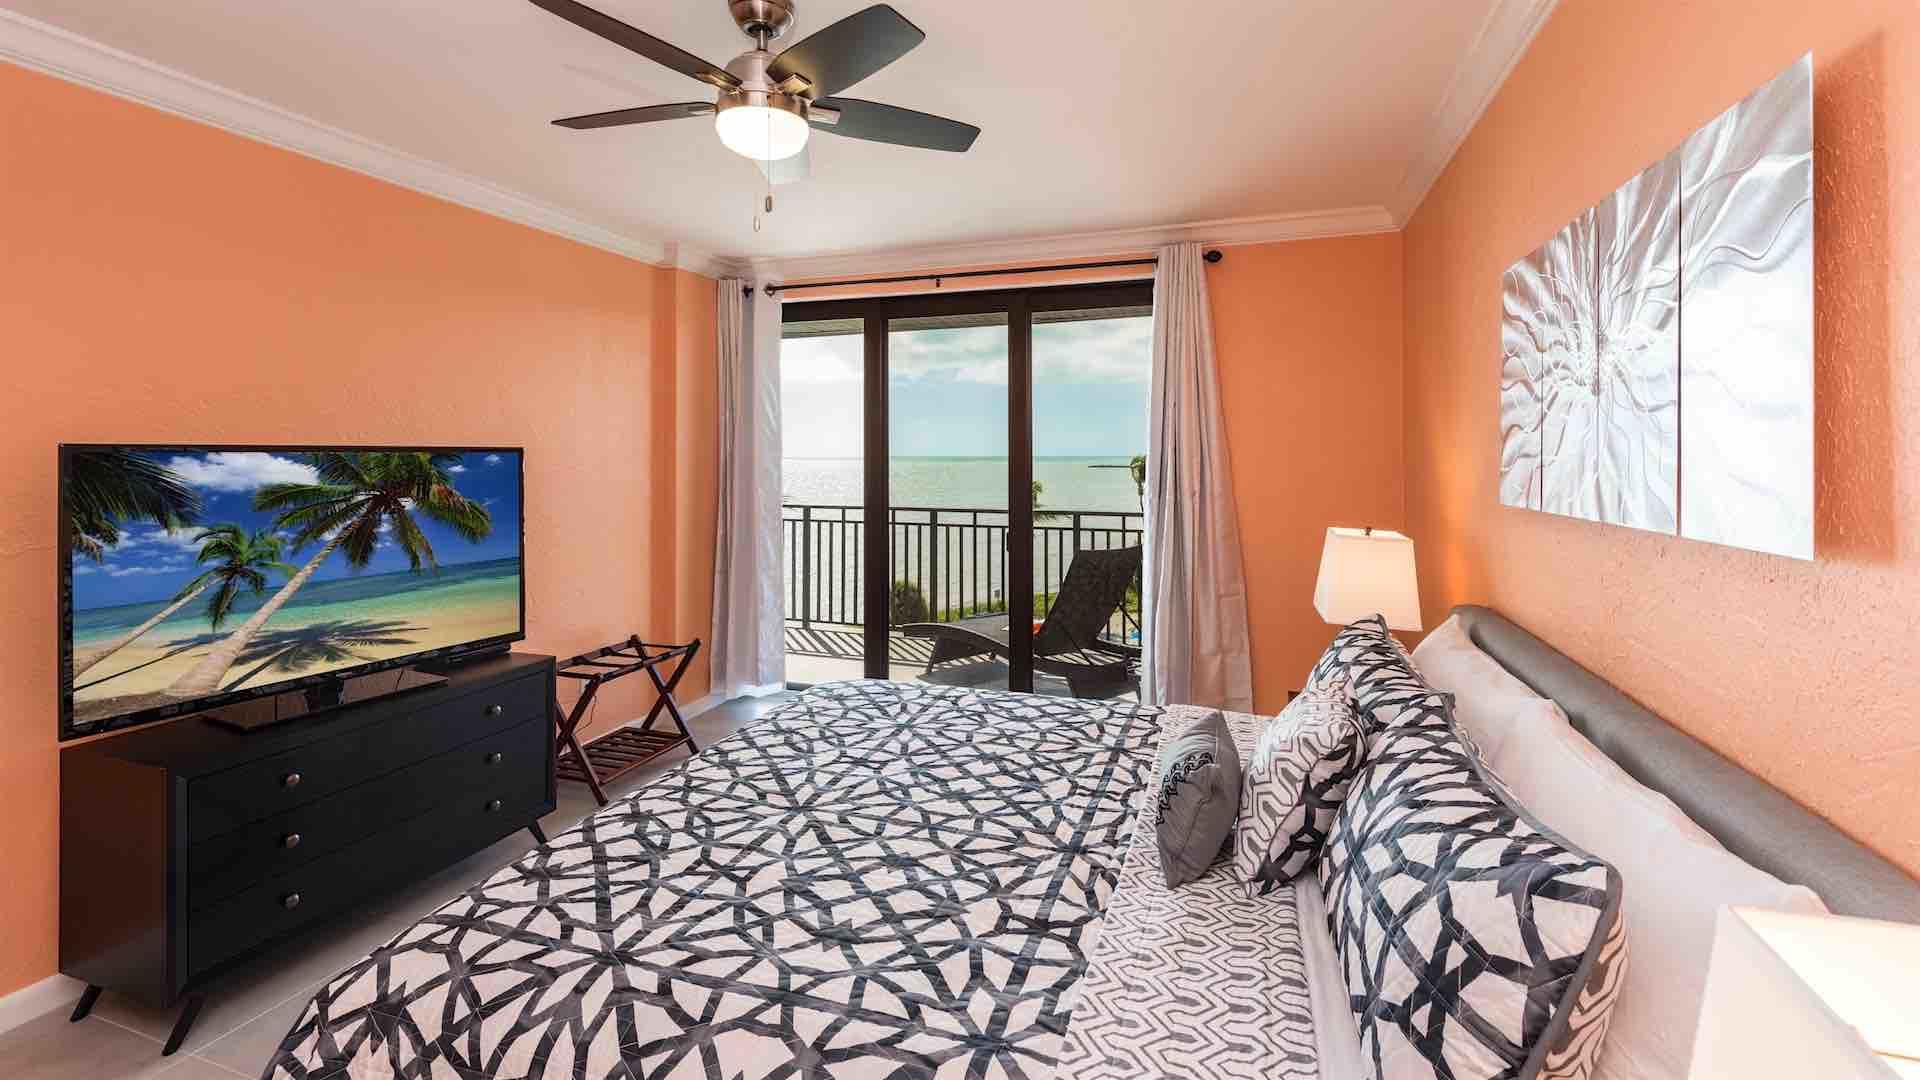 The master bedroom has ocean views and balcony access...